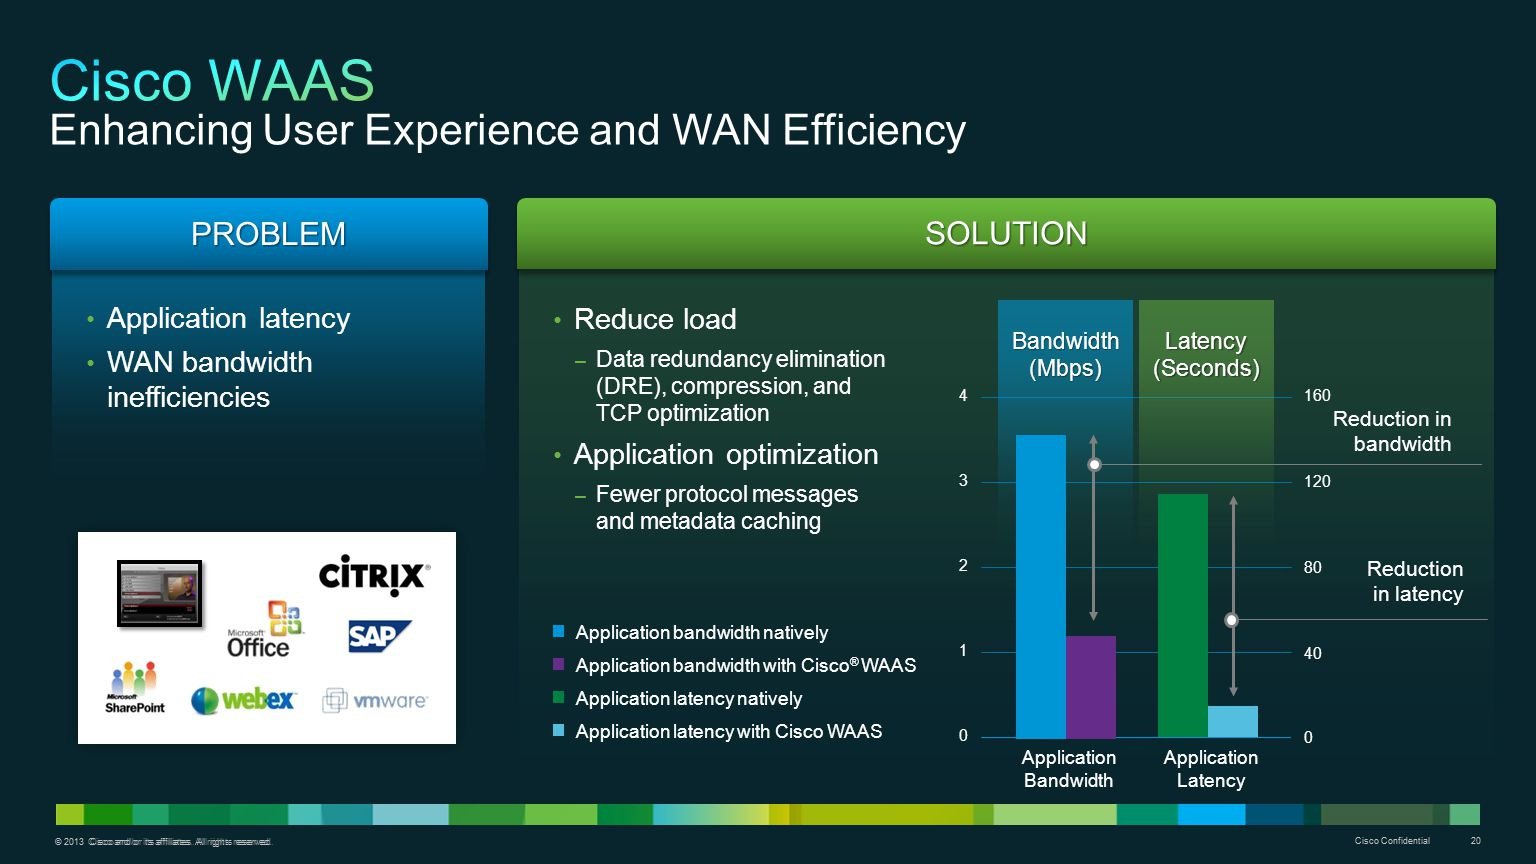 Cisco WAAS Enhancing User Experience and WAN Efficiency